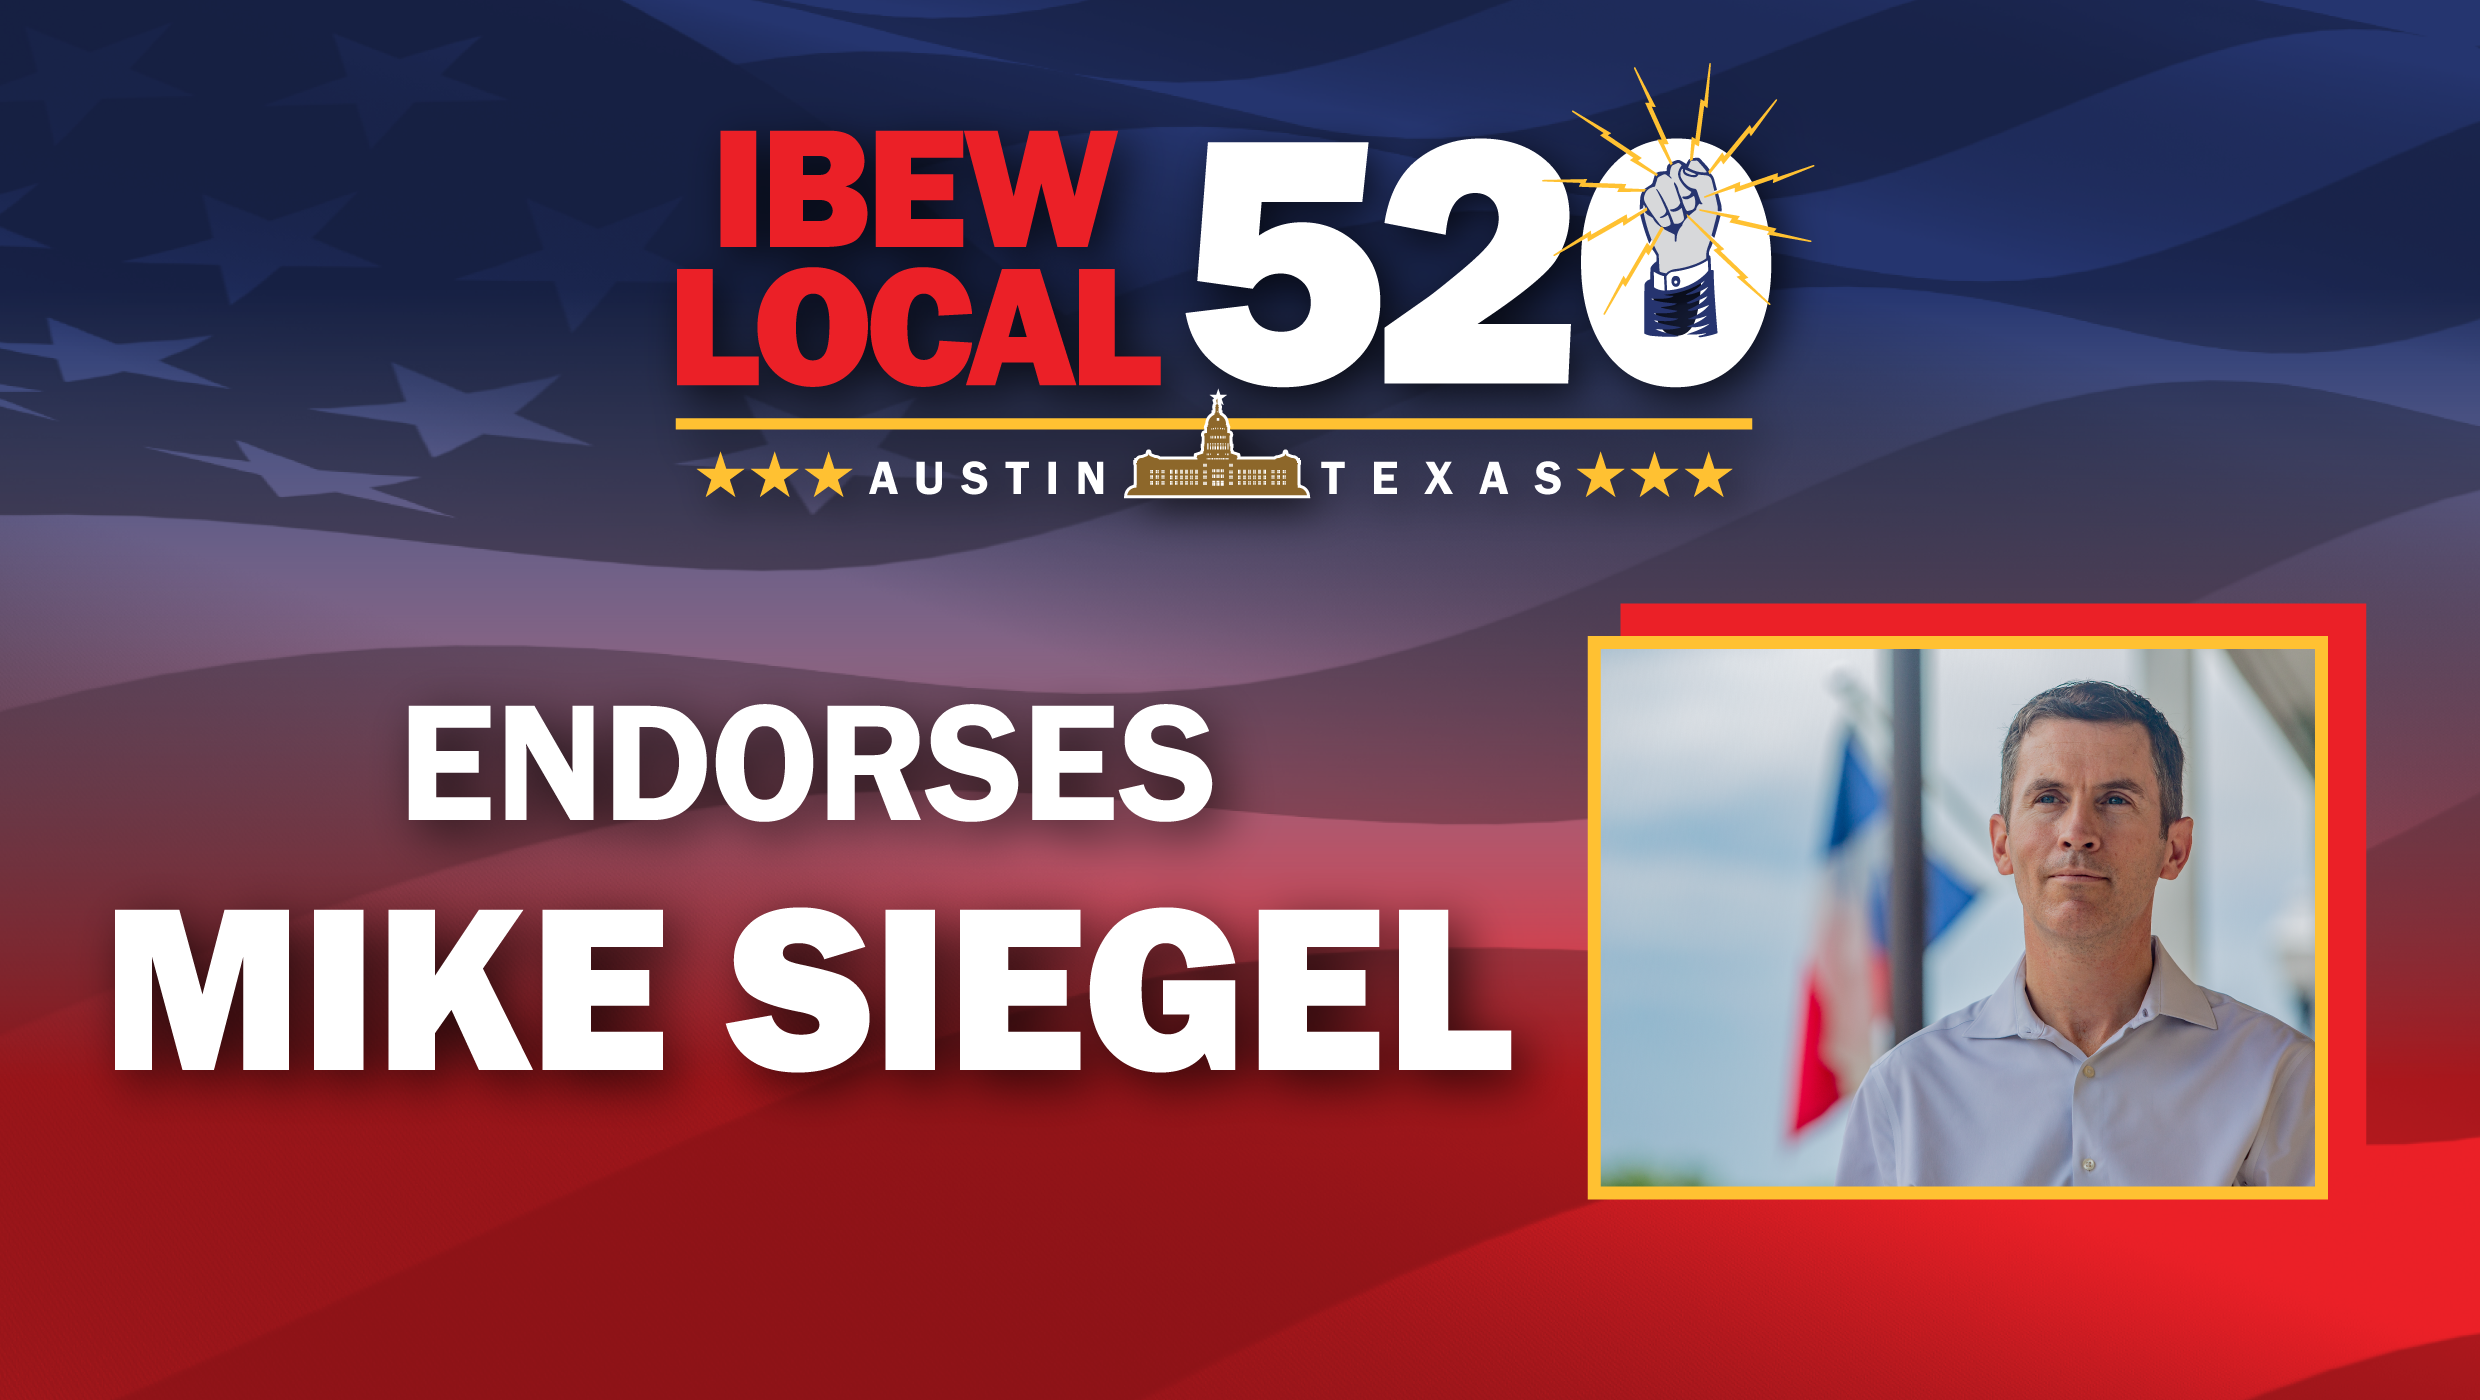 IBEW 520 Endorses Mike Siegel